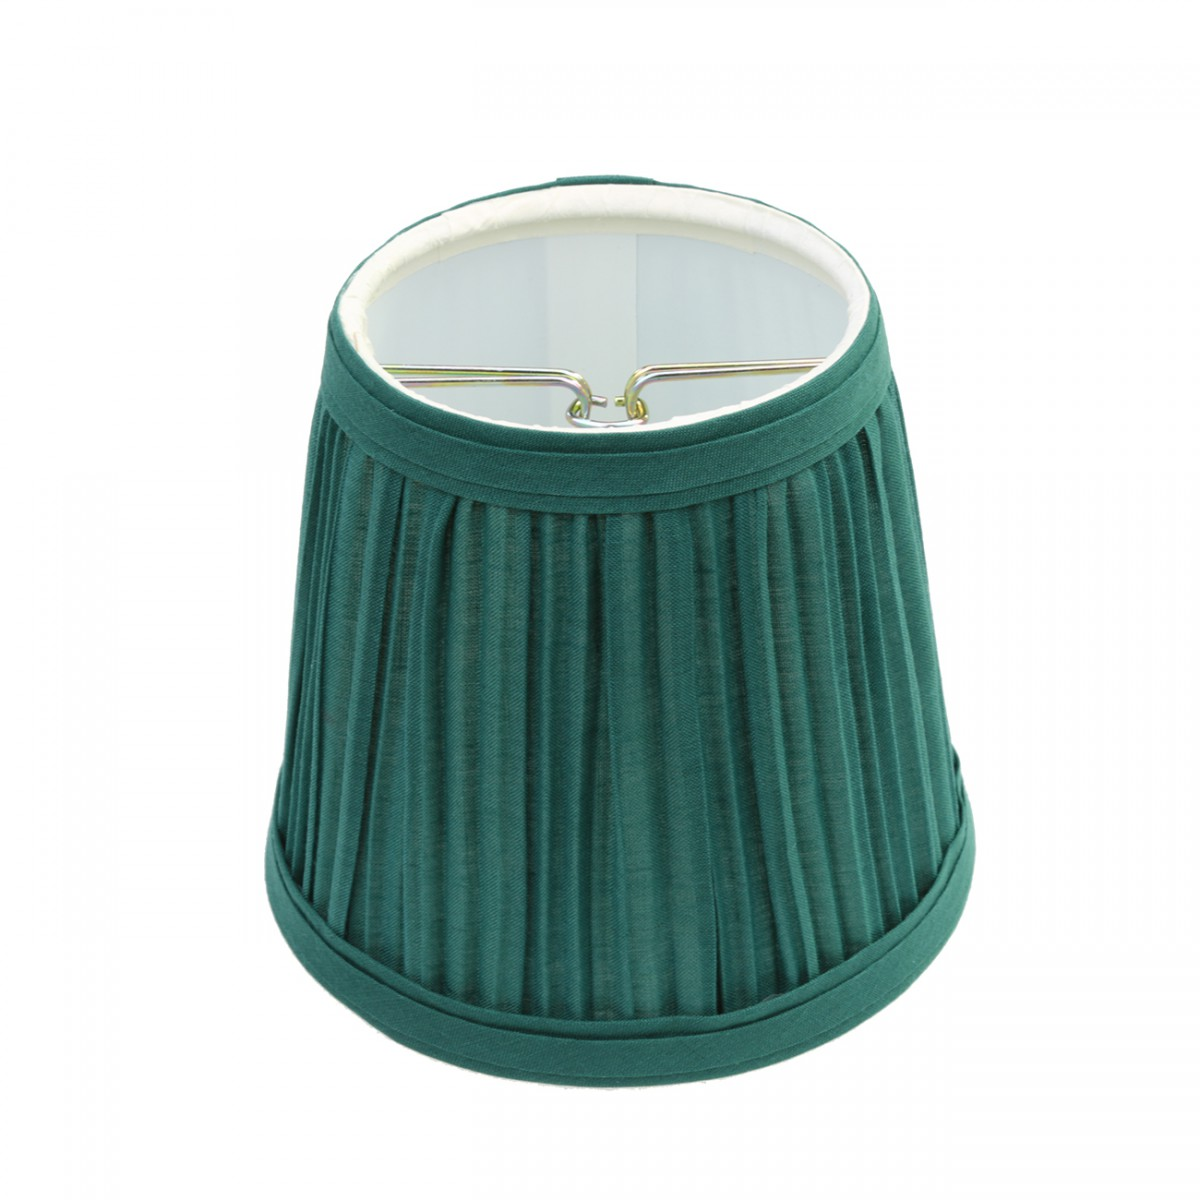 lamp shade hunter green fabric 4 1 16 h mini clip on. Black Bedroom Furniture Sets. Home Design Ideas